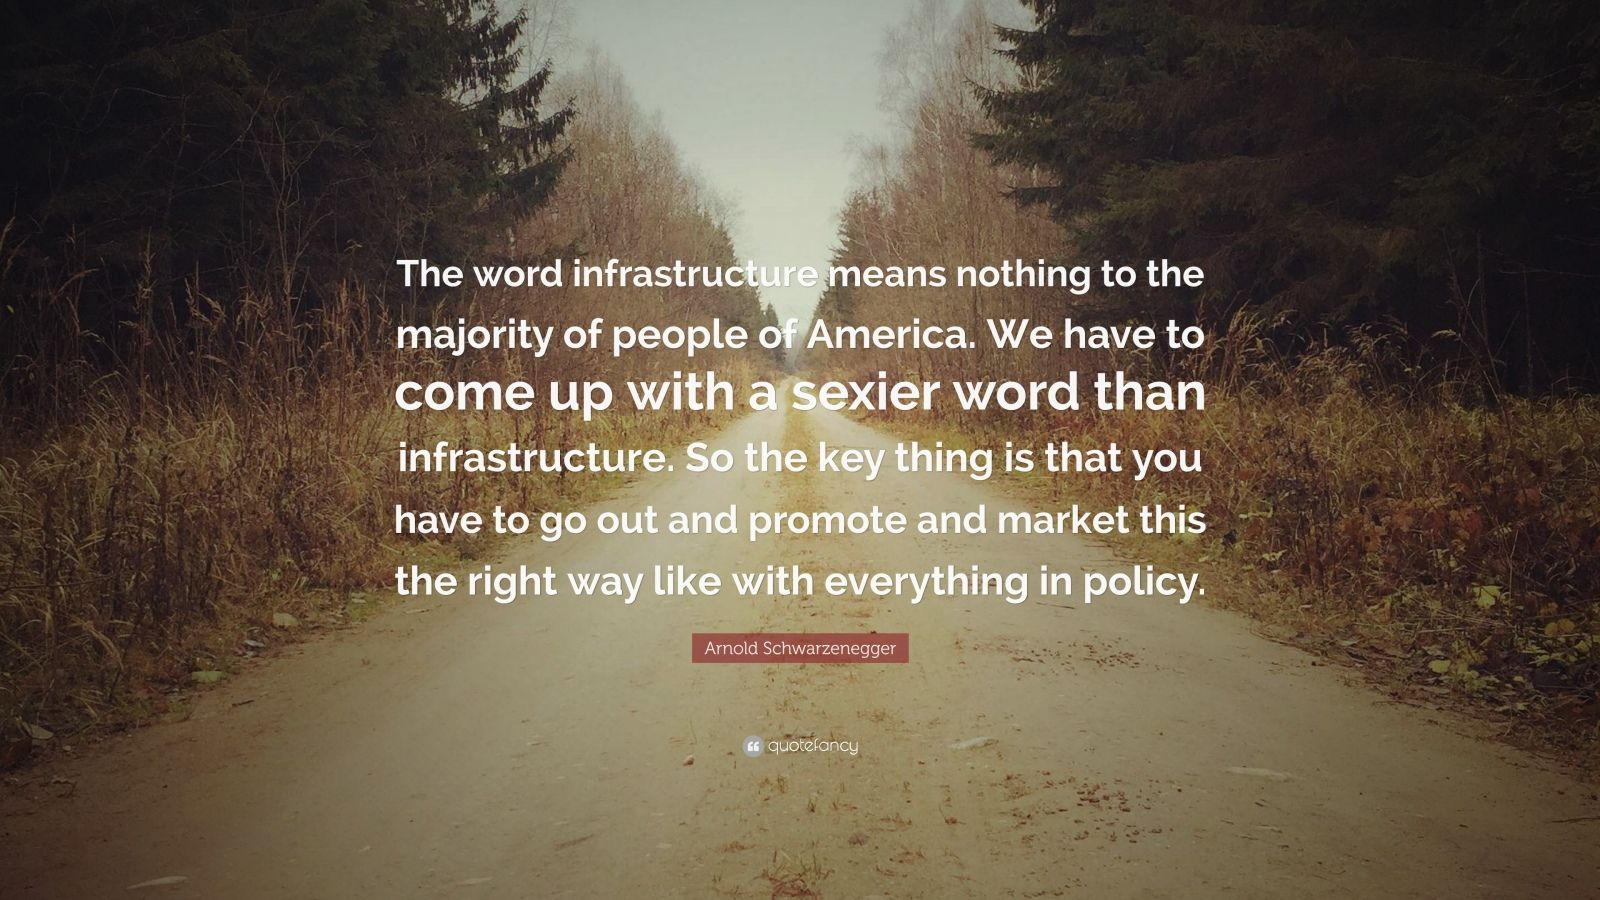 """Arnold Schwarzenegger Quote: """"The word infrastructure means nothing to the majority of people of America. We have to come up with a sexier word than infrastructure. So the key thing is that you have to go out and promote and market this the right way like with everything in policy."""""""